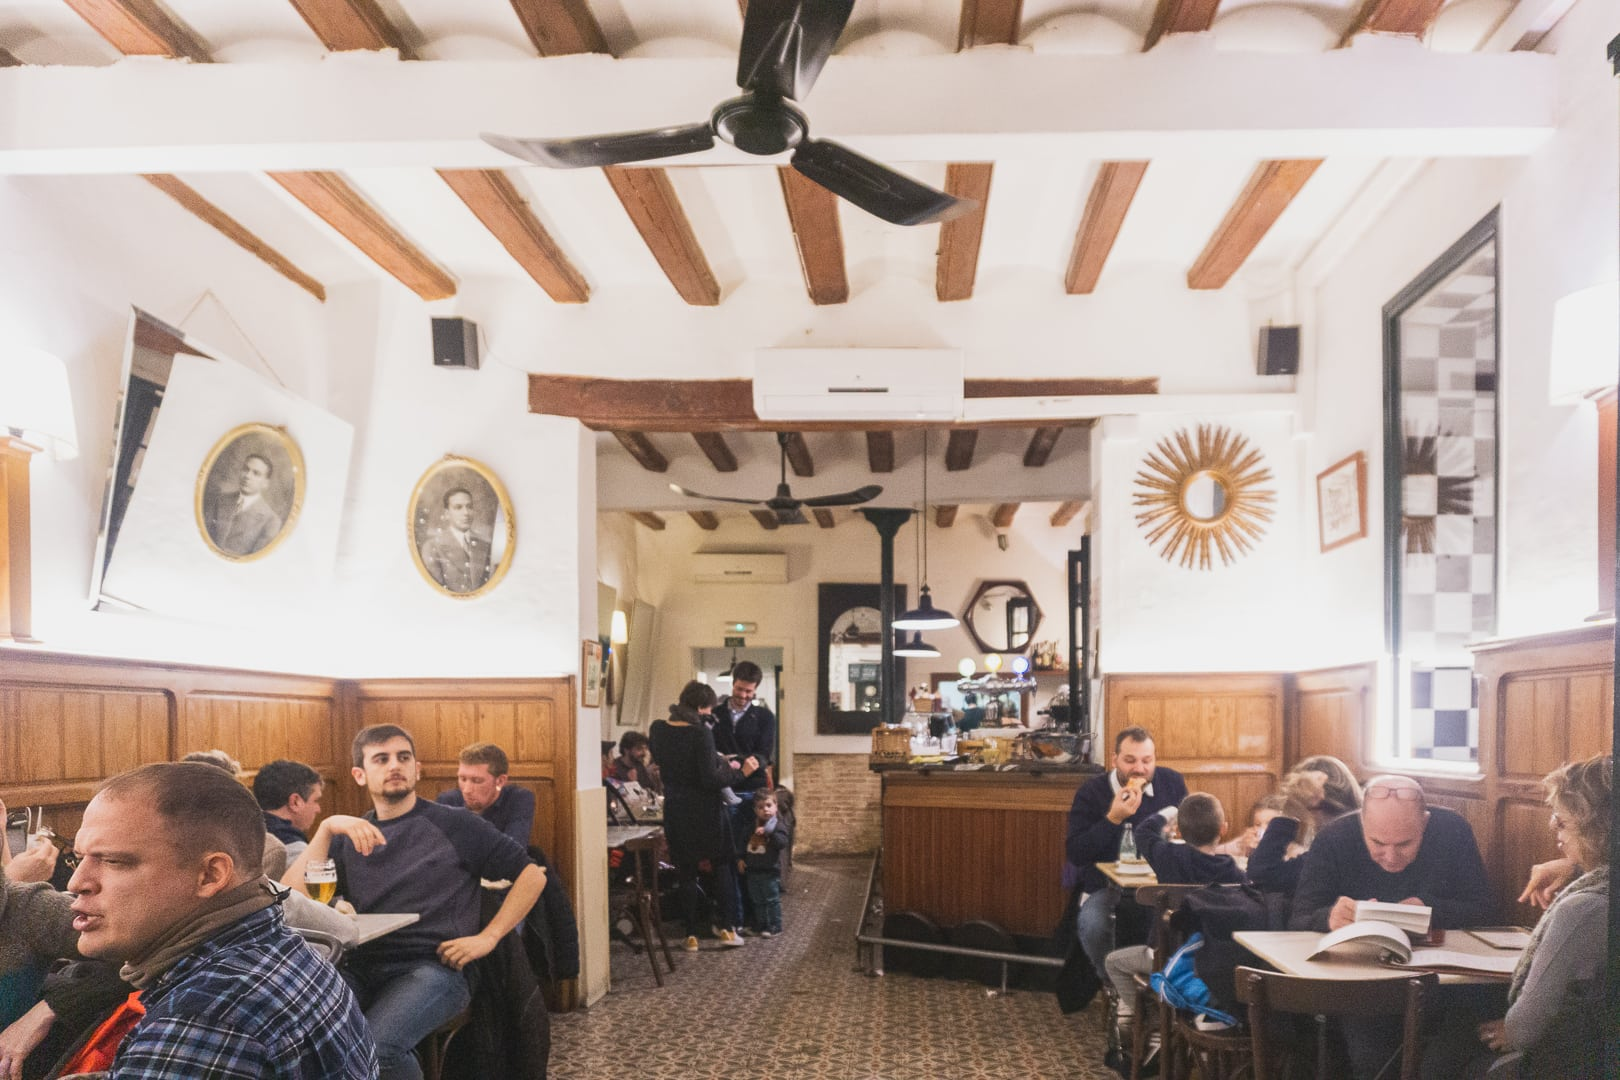 Sol Soler, a best place to eat in Barcelona